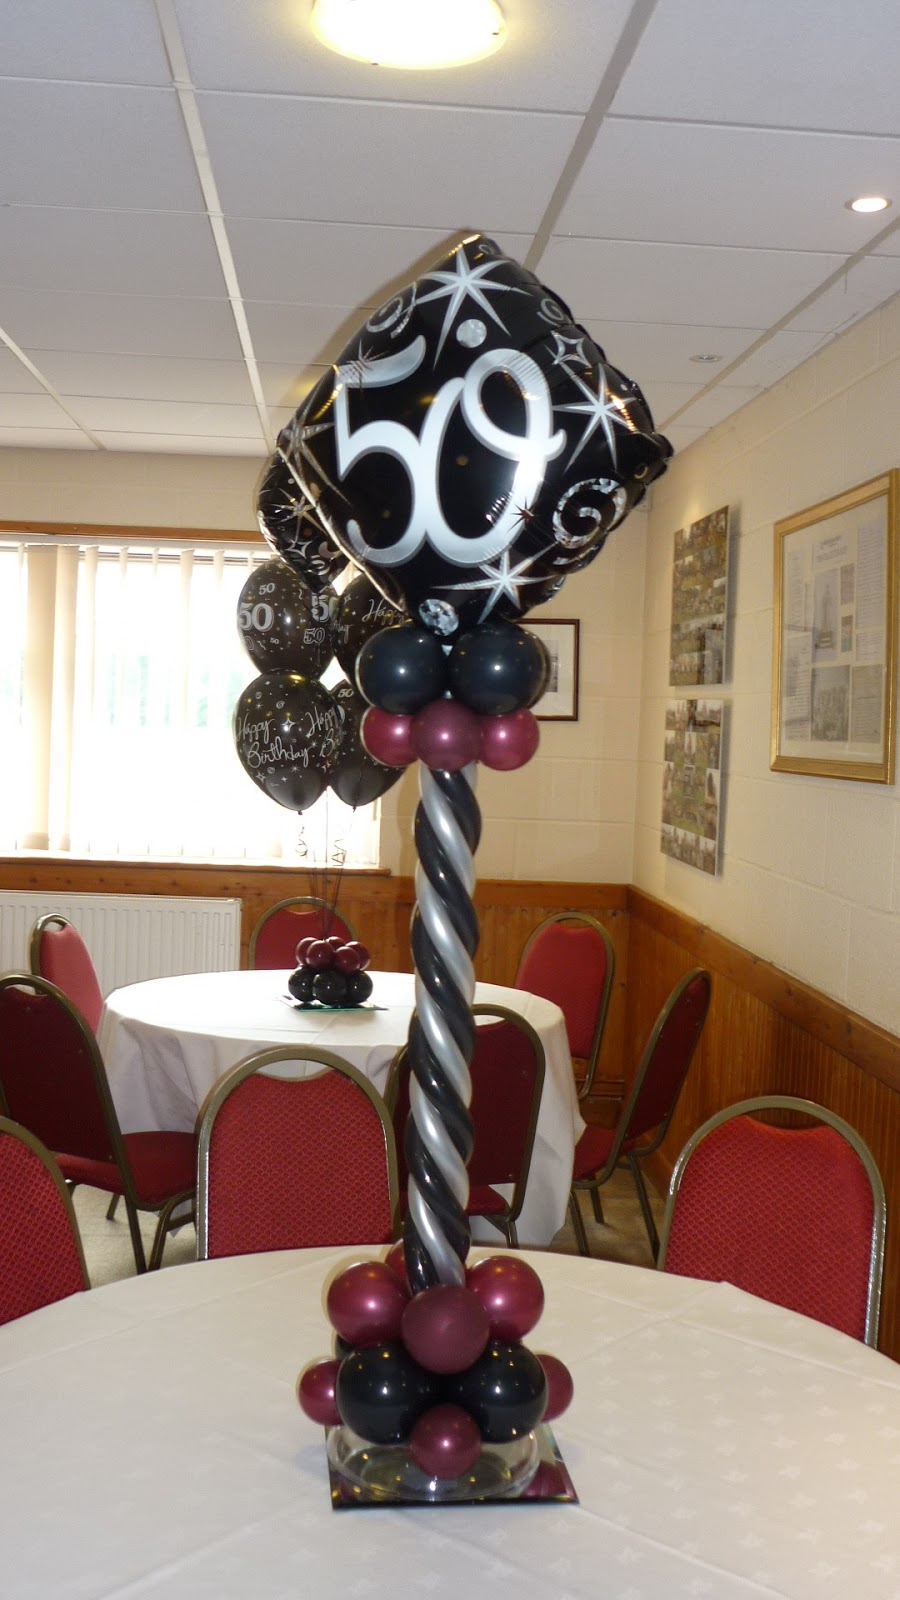 The very best balloon blog how can we 39 jazz up 39 our quotes - Centerpiece ideas for men ...